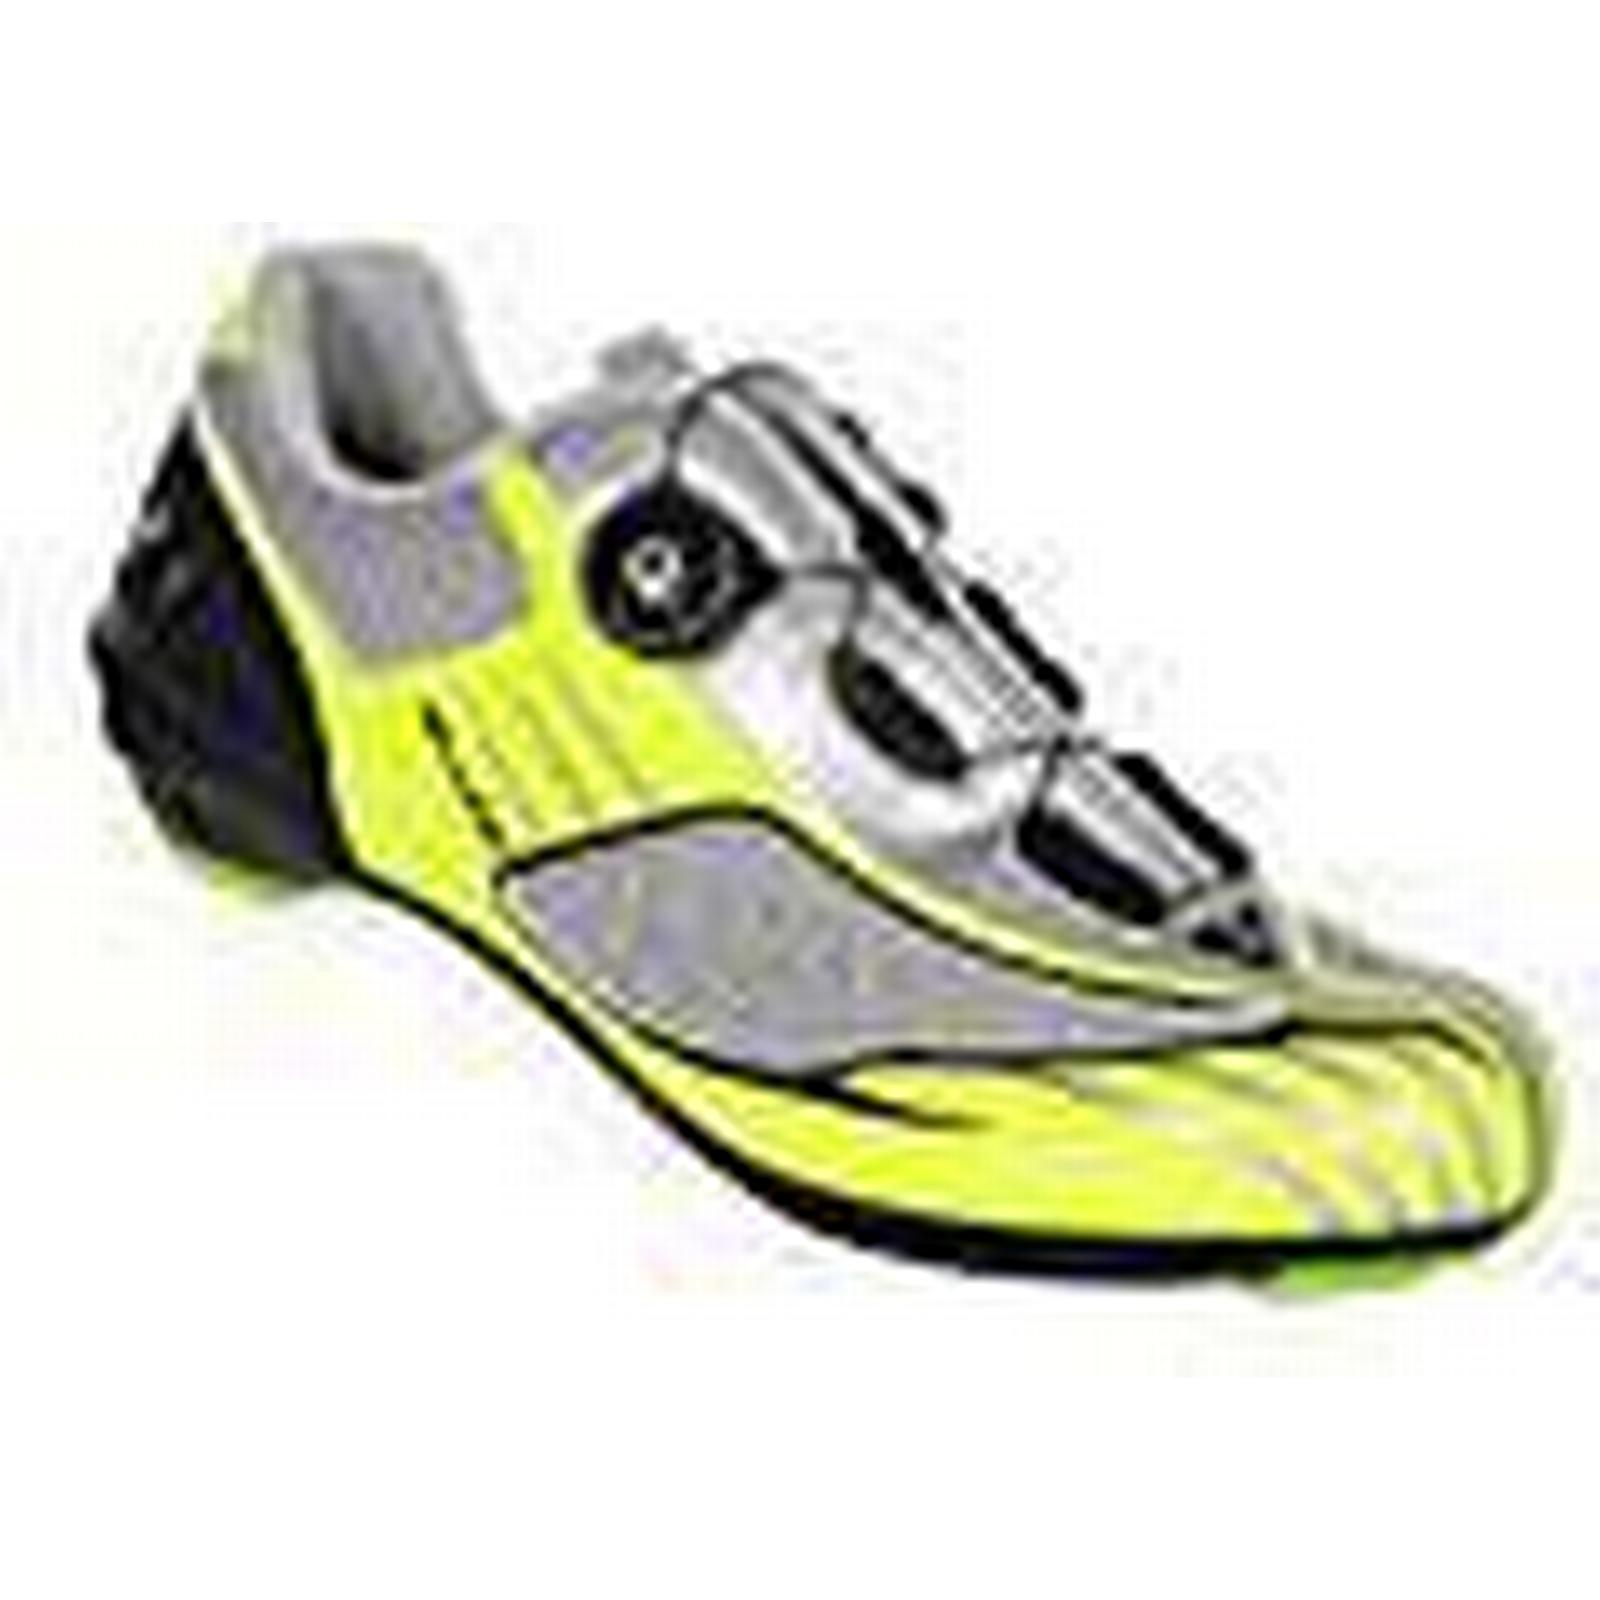 Massi cycling Aria - Unisex road cycling Massi shoes, grey/neon yellow colour, size 44 b78564